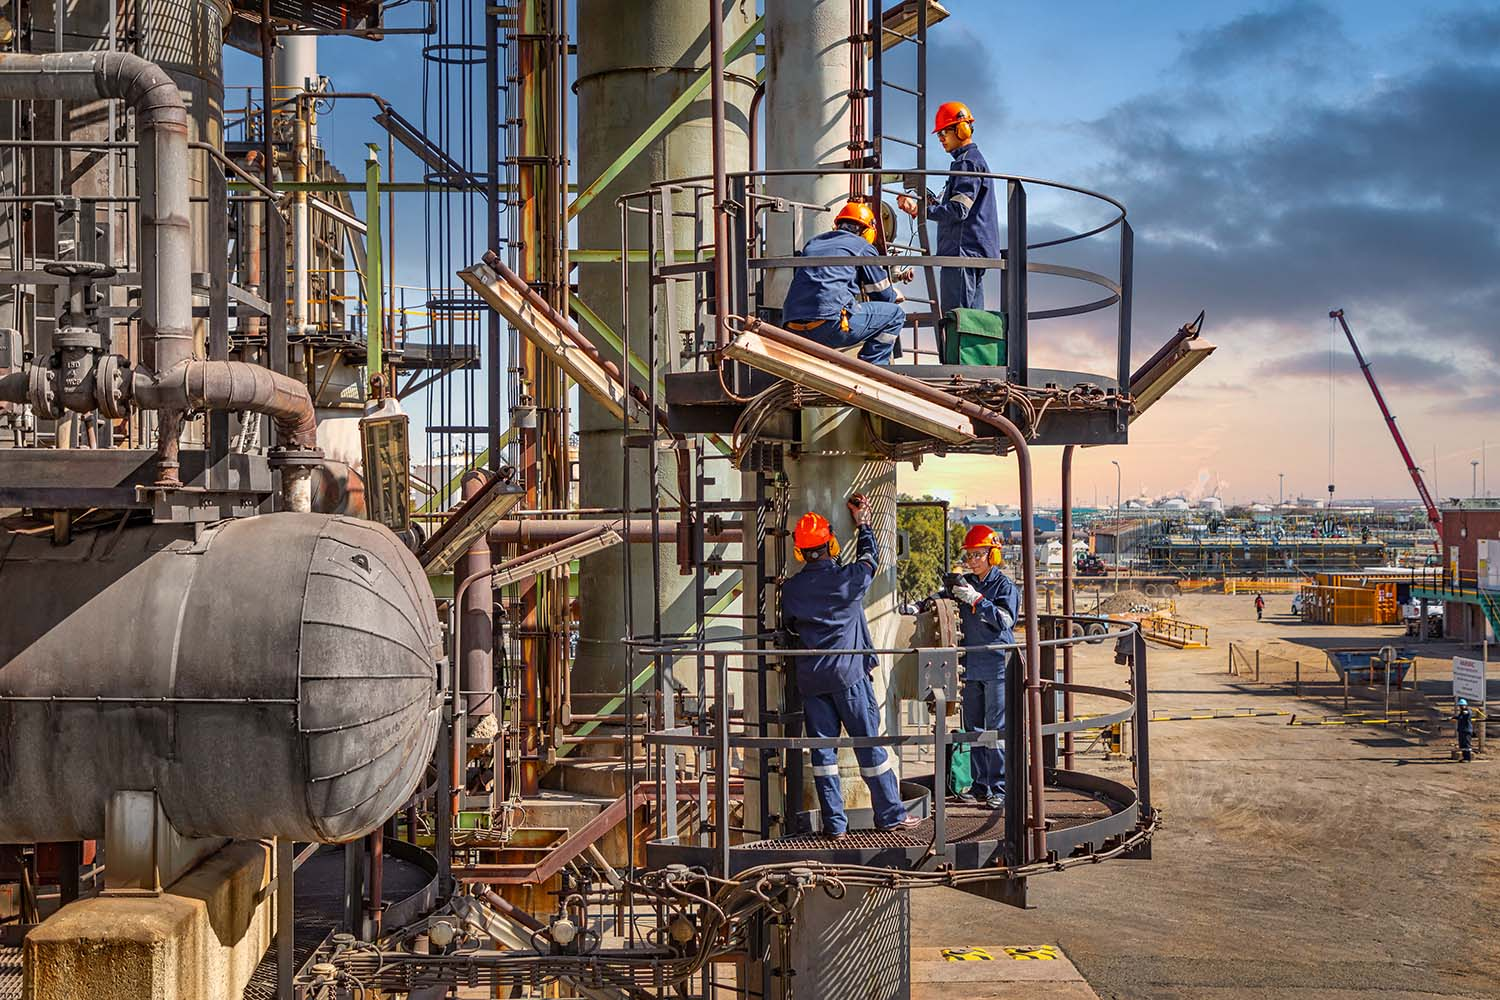 Four technicians inspecting chemical plant